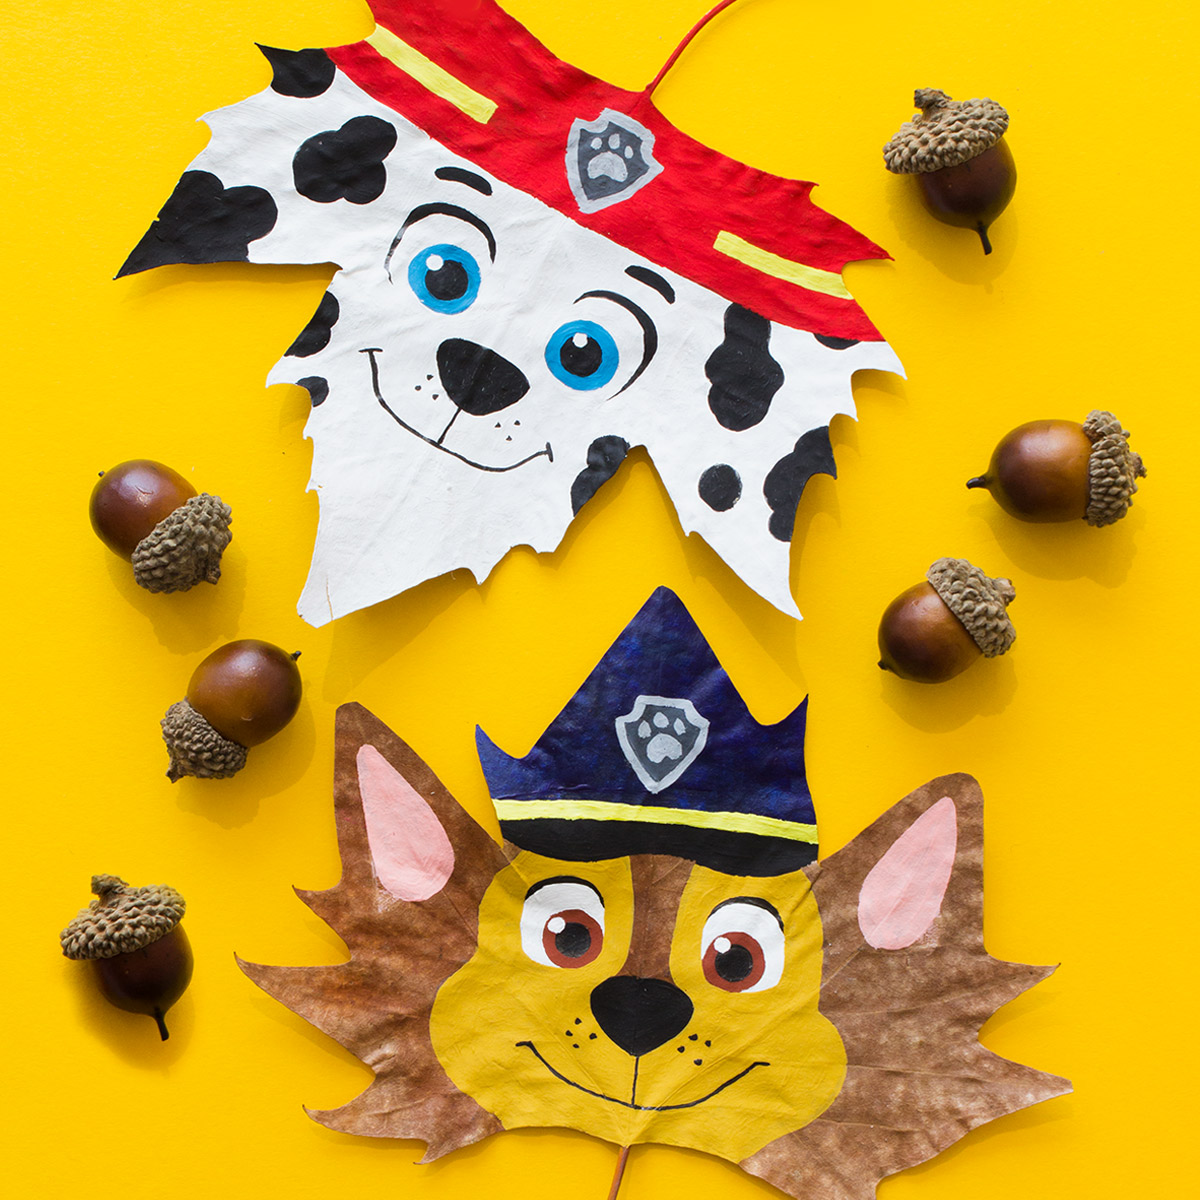 Blaze Pinecone Craft and PAW Patrol Leaves Nickelodeon